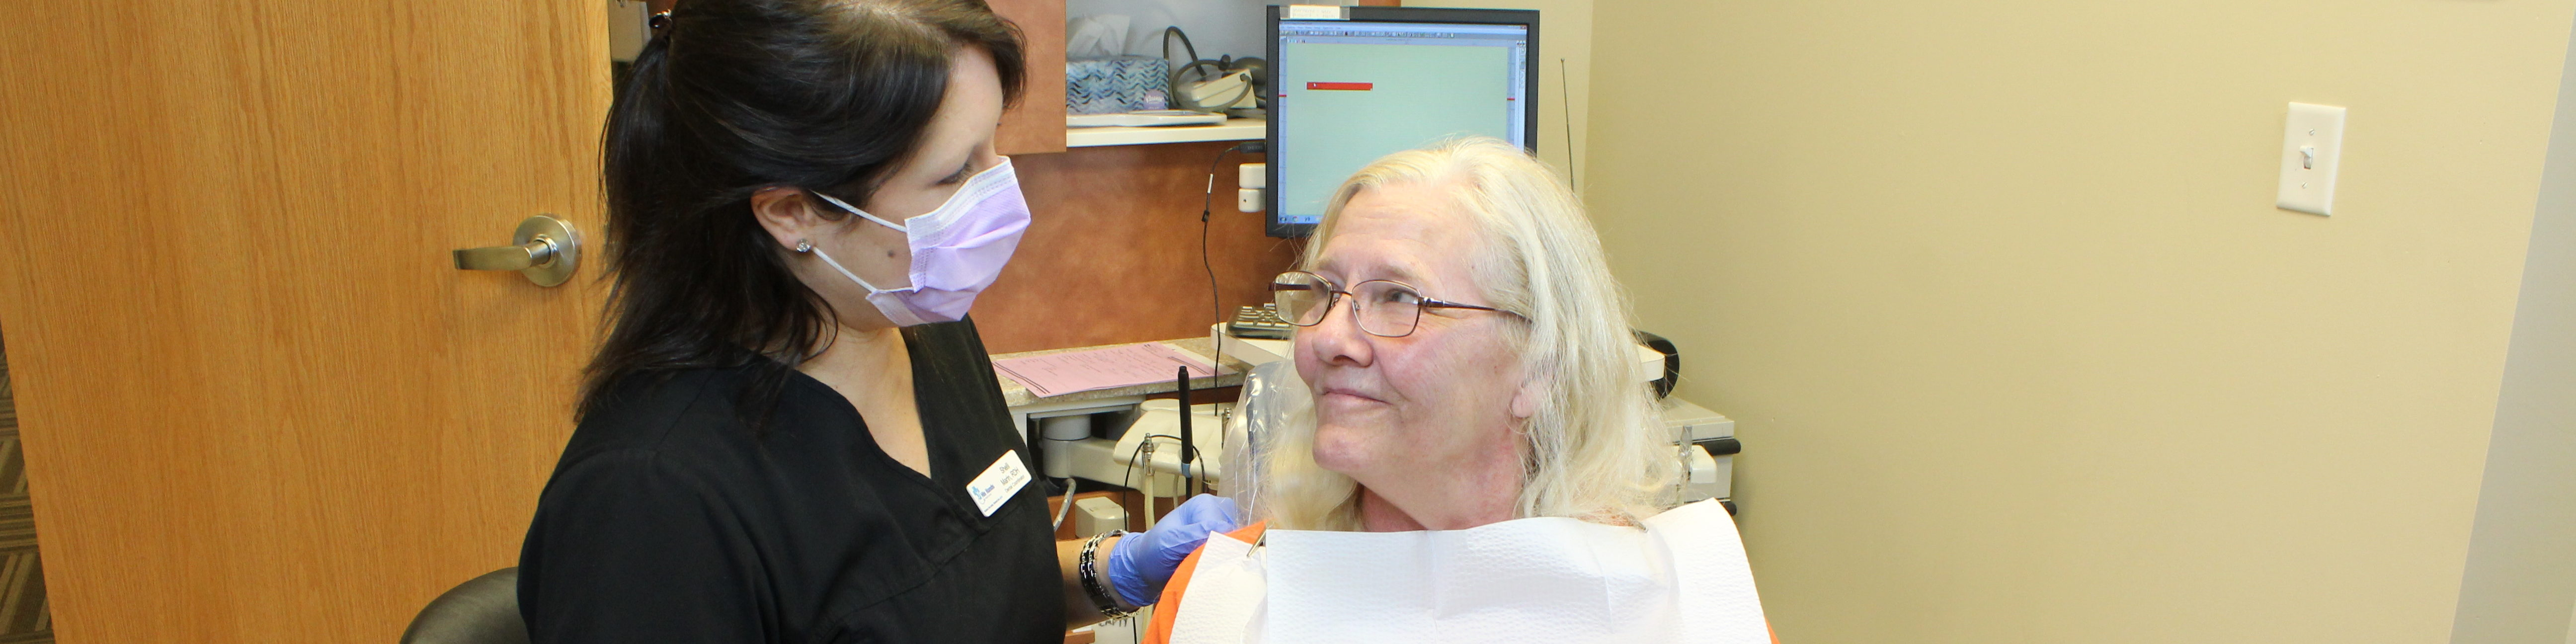 Dental Care at His Hands Free Clinic